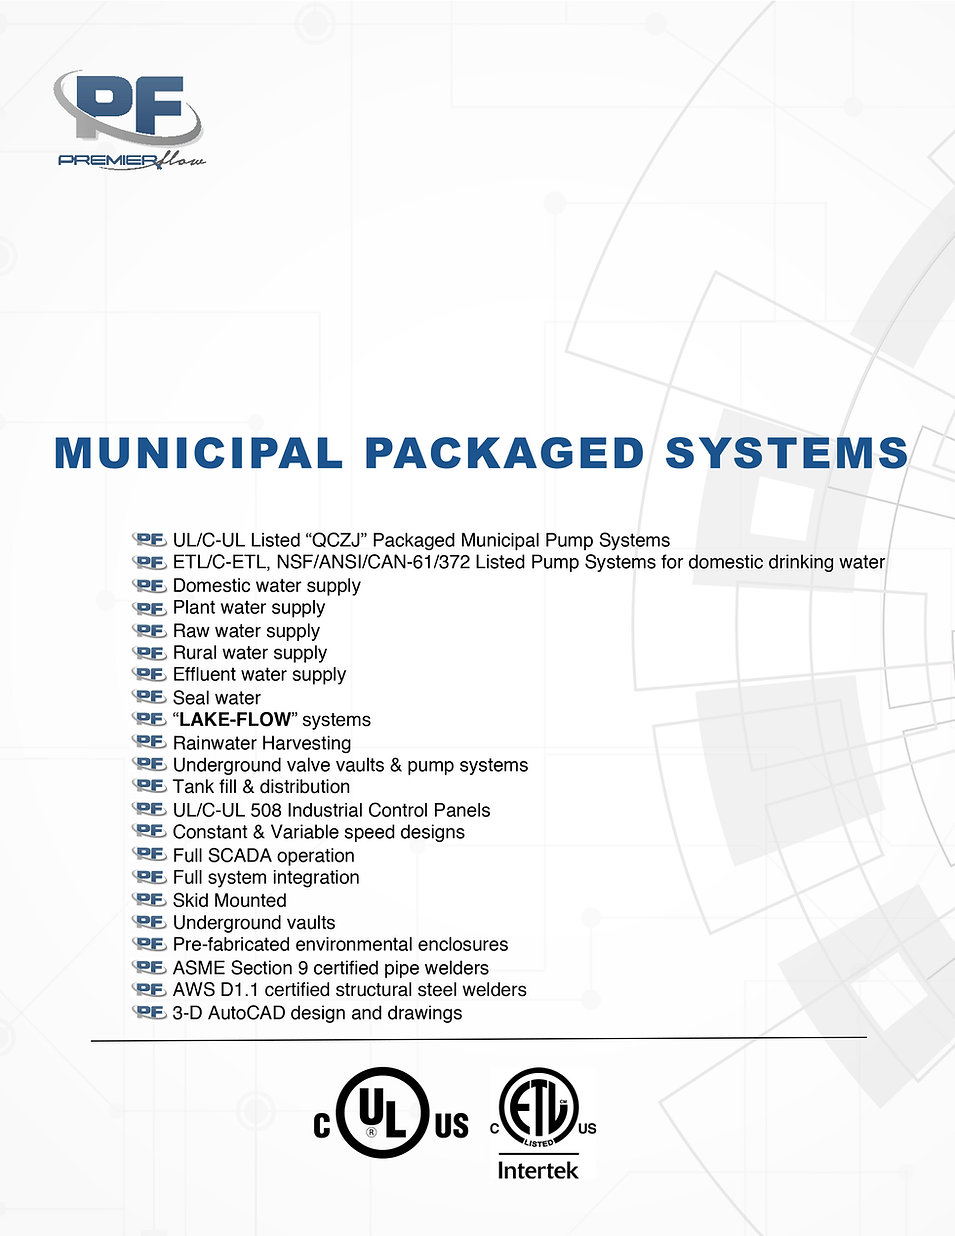 Municipal Packaged Systems.jpg